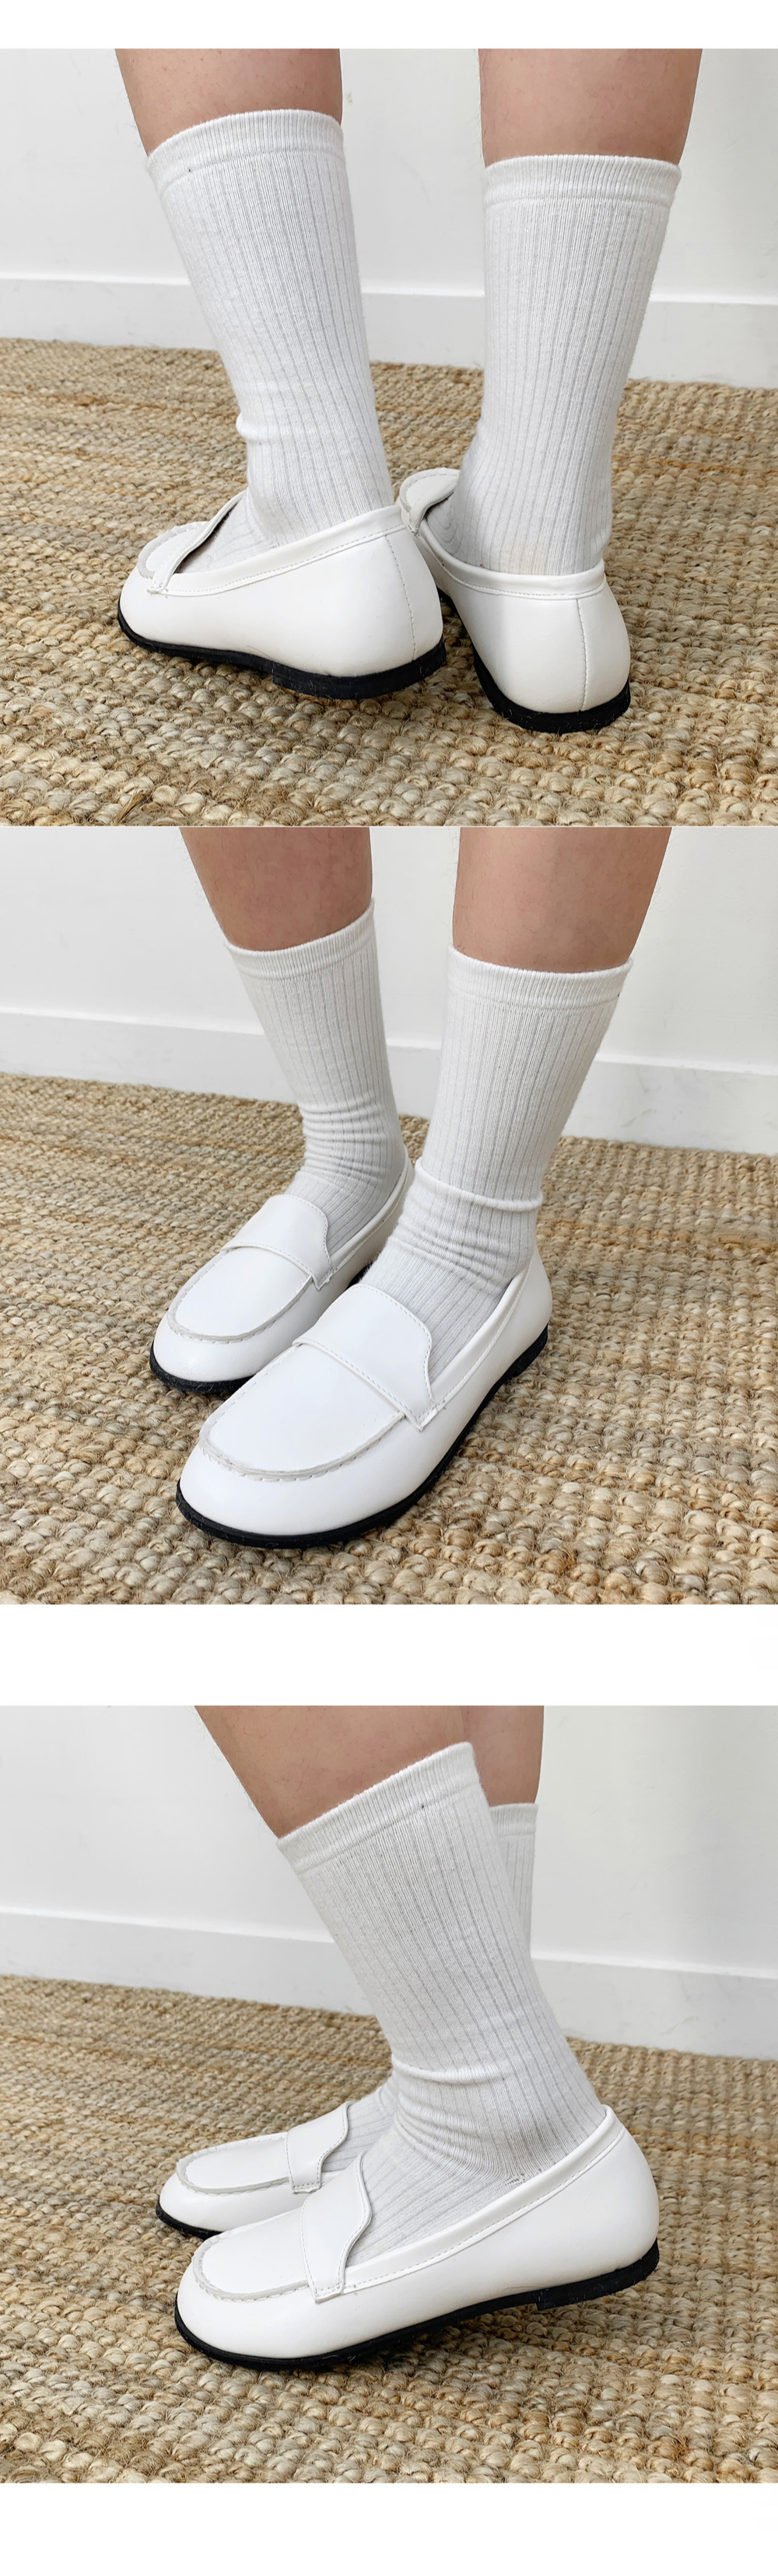 Dumpling round loafers